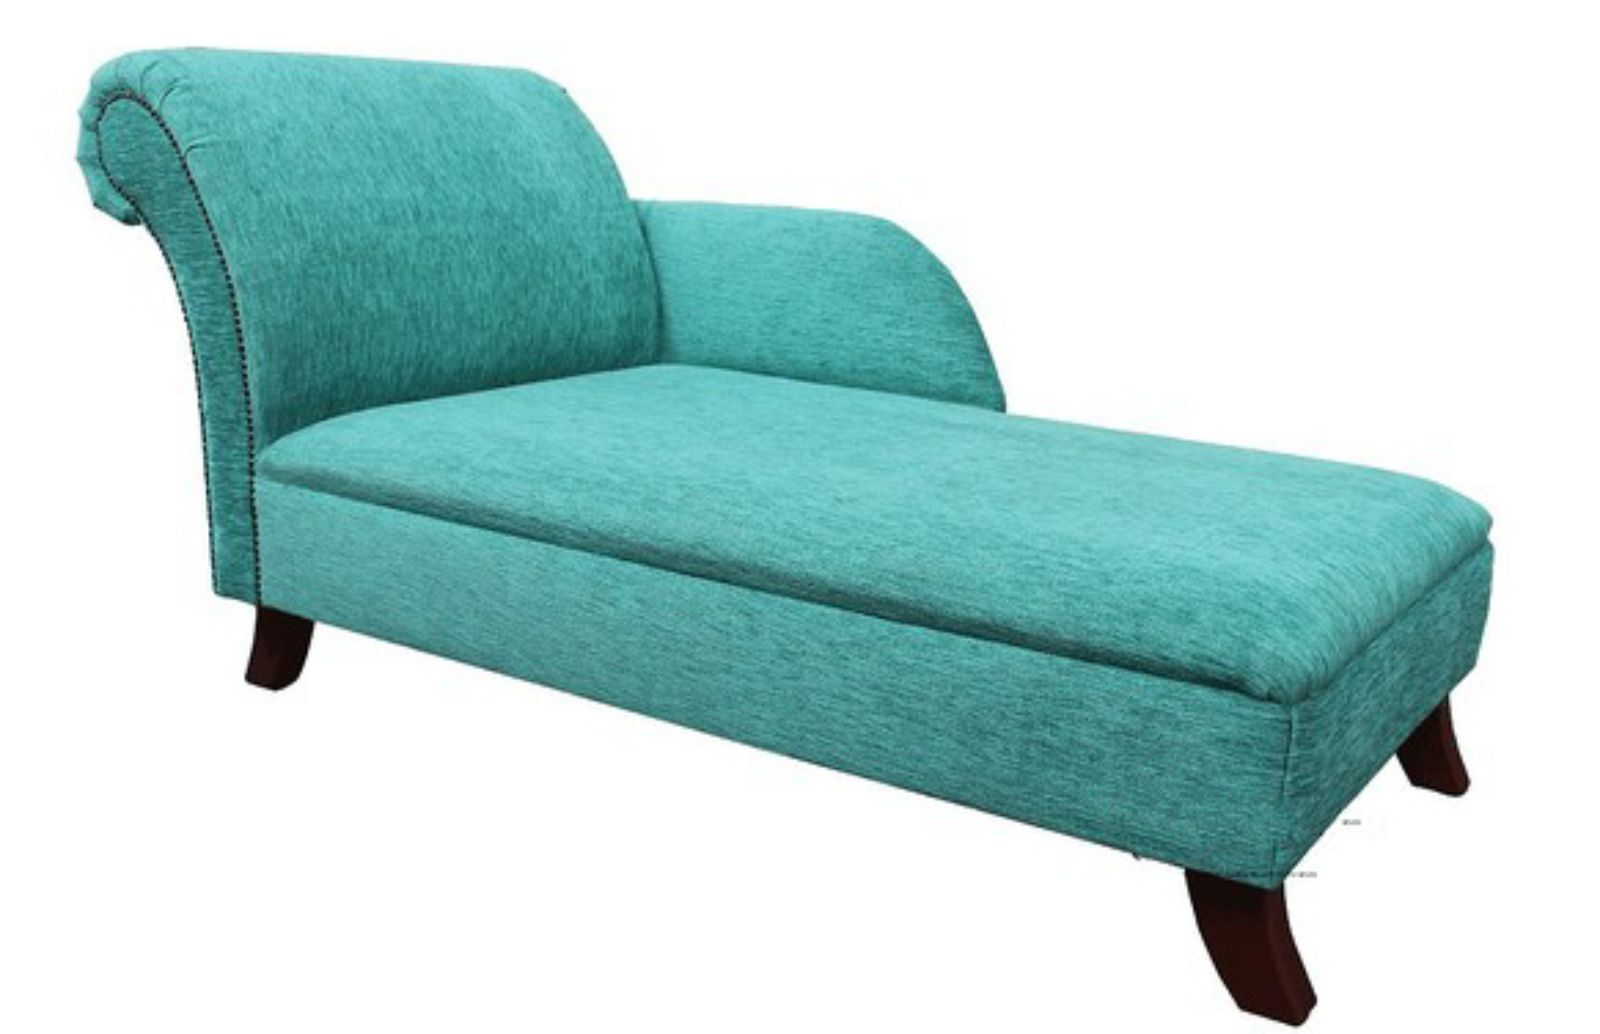 Chaise Lounge Day Bed Buttonless Turquoise